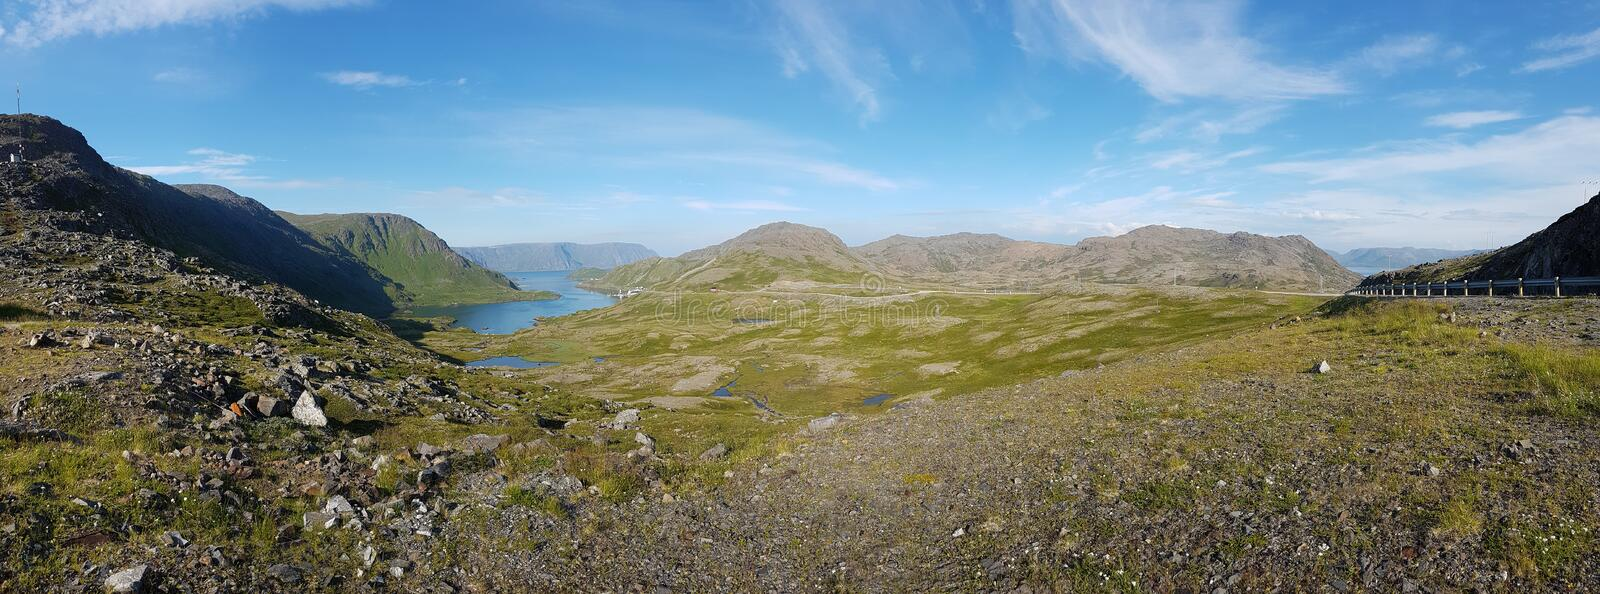 Norwegian island Mageroya. Tundra landscape of the island Mageroya in the extreme northern part of Norway stock photos